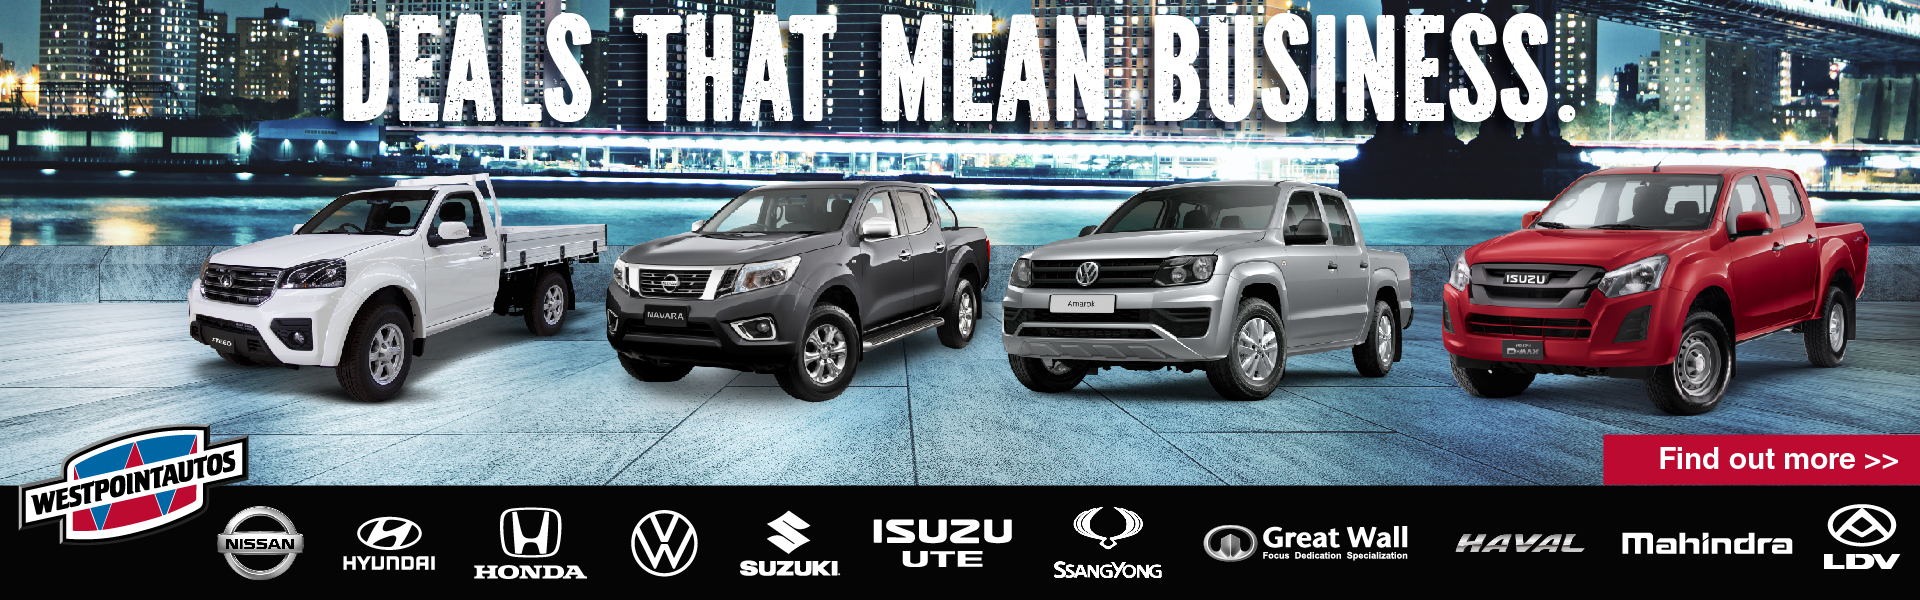 WestpointAutos-Deals-That-Mean-Business